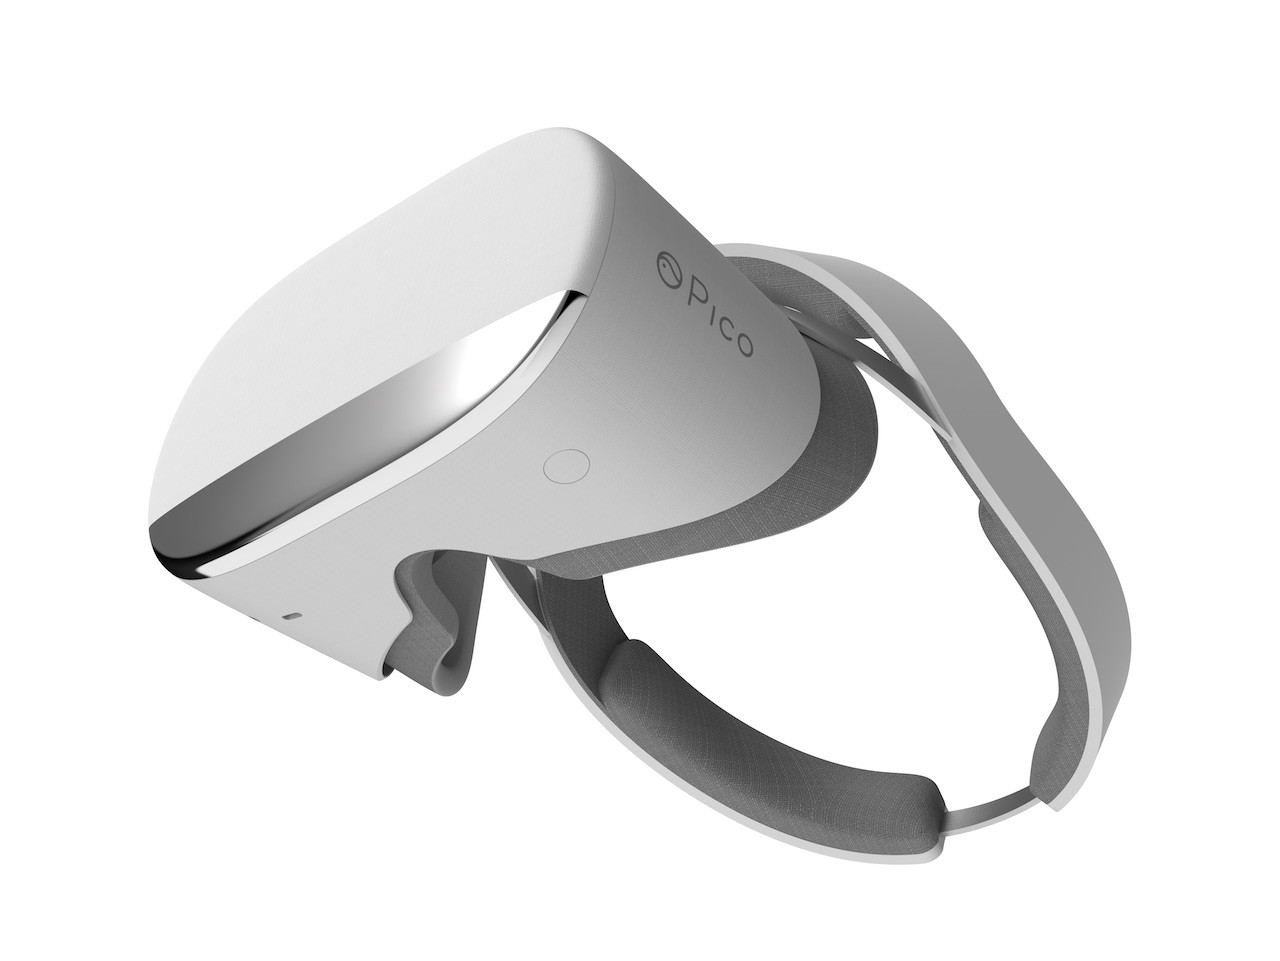 Pico Neo CV is a wireless VR headset with advanced motion tracking